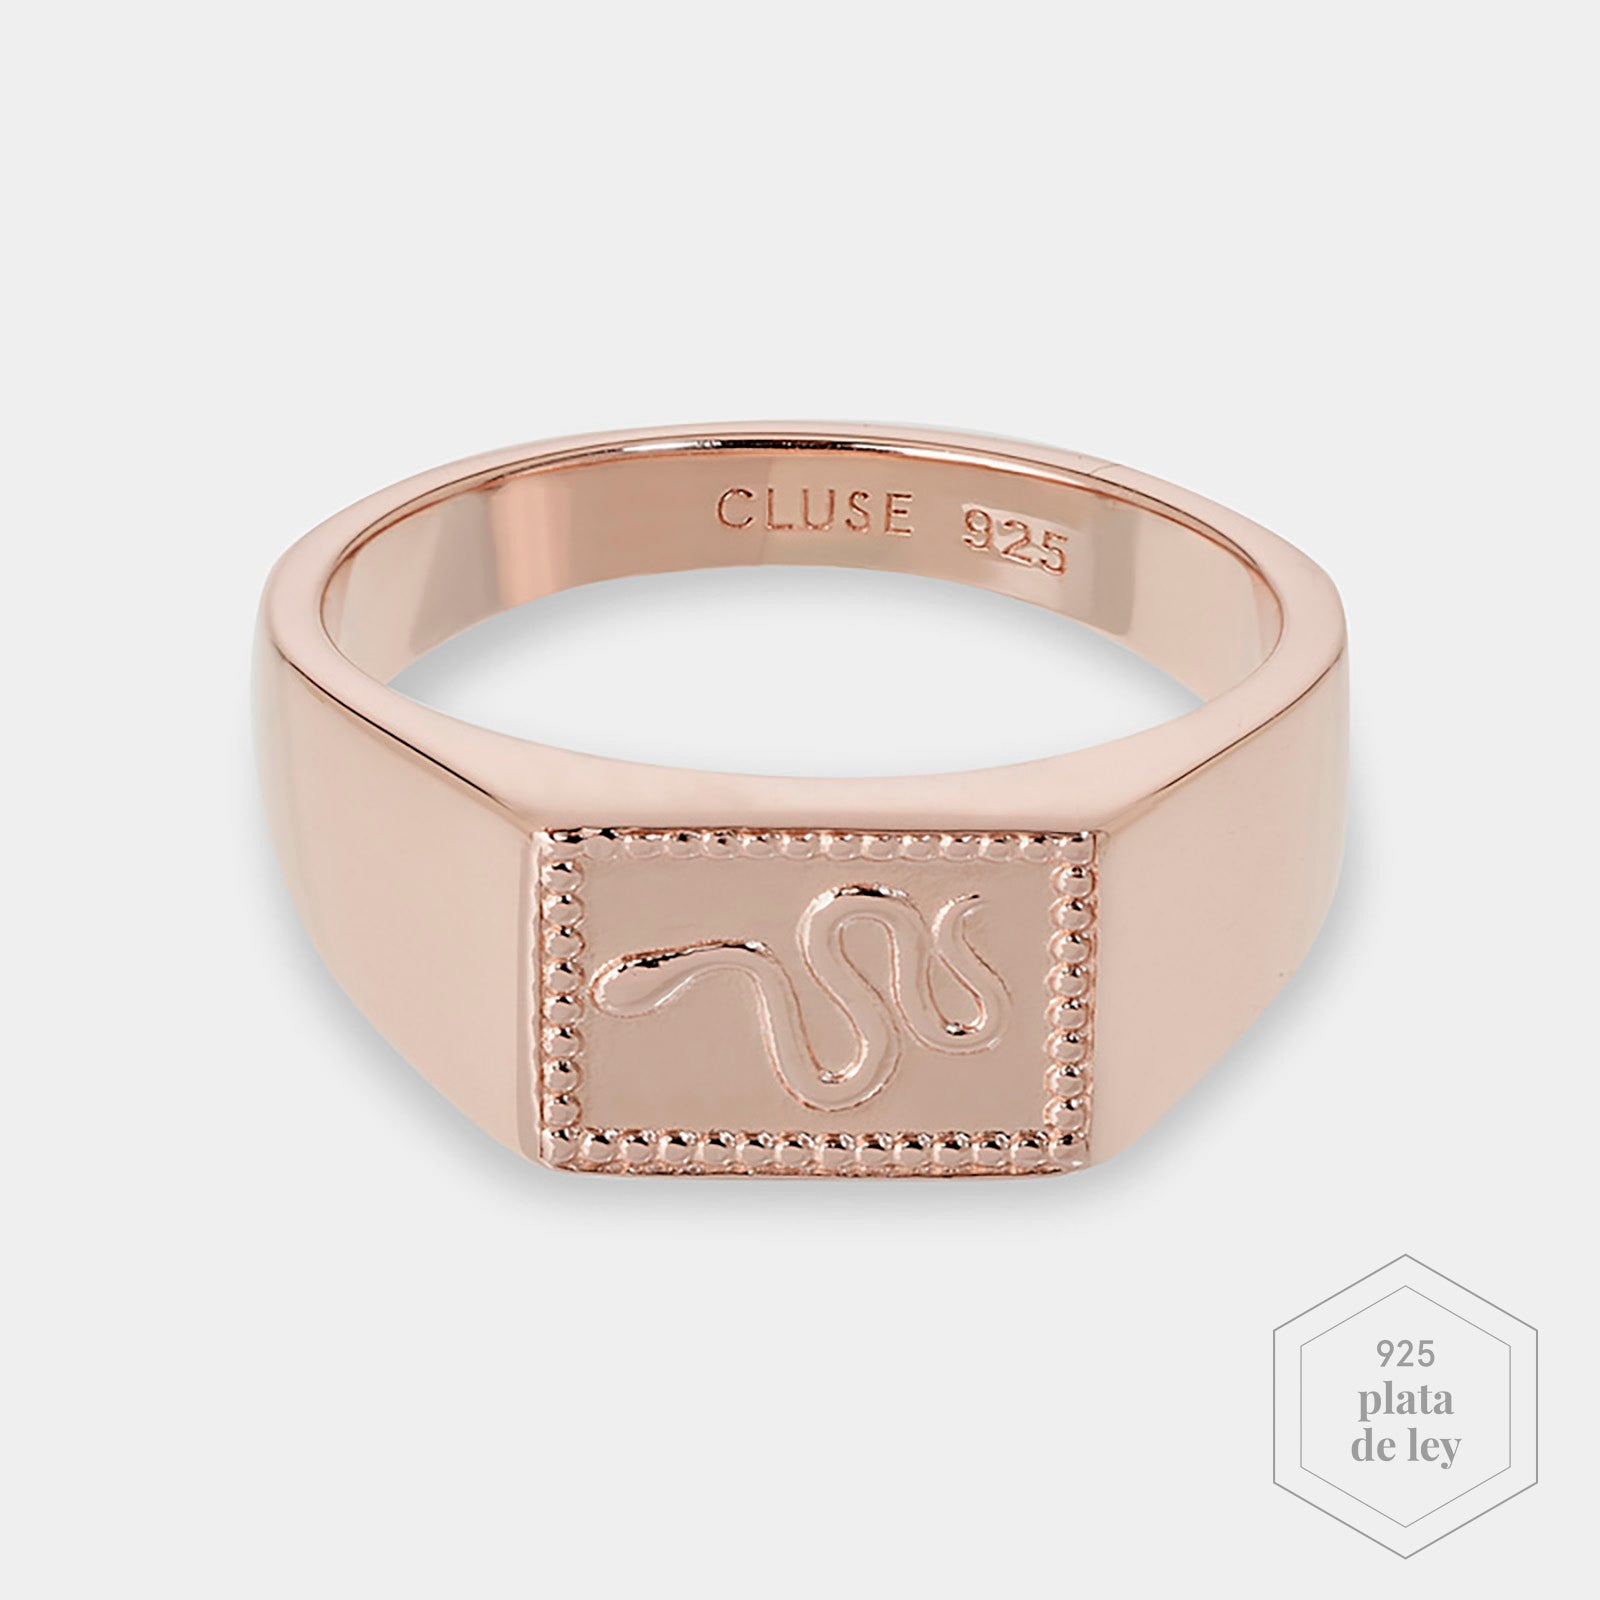 CLUSE Force Tropicale Rose Gold Signet Rectangular Ring 54 CLJ40012-54 - Anillo talla 54